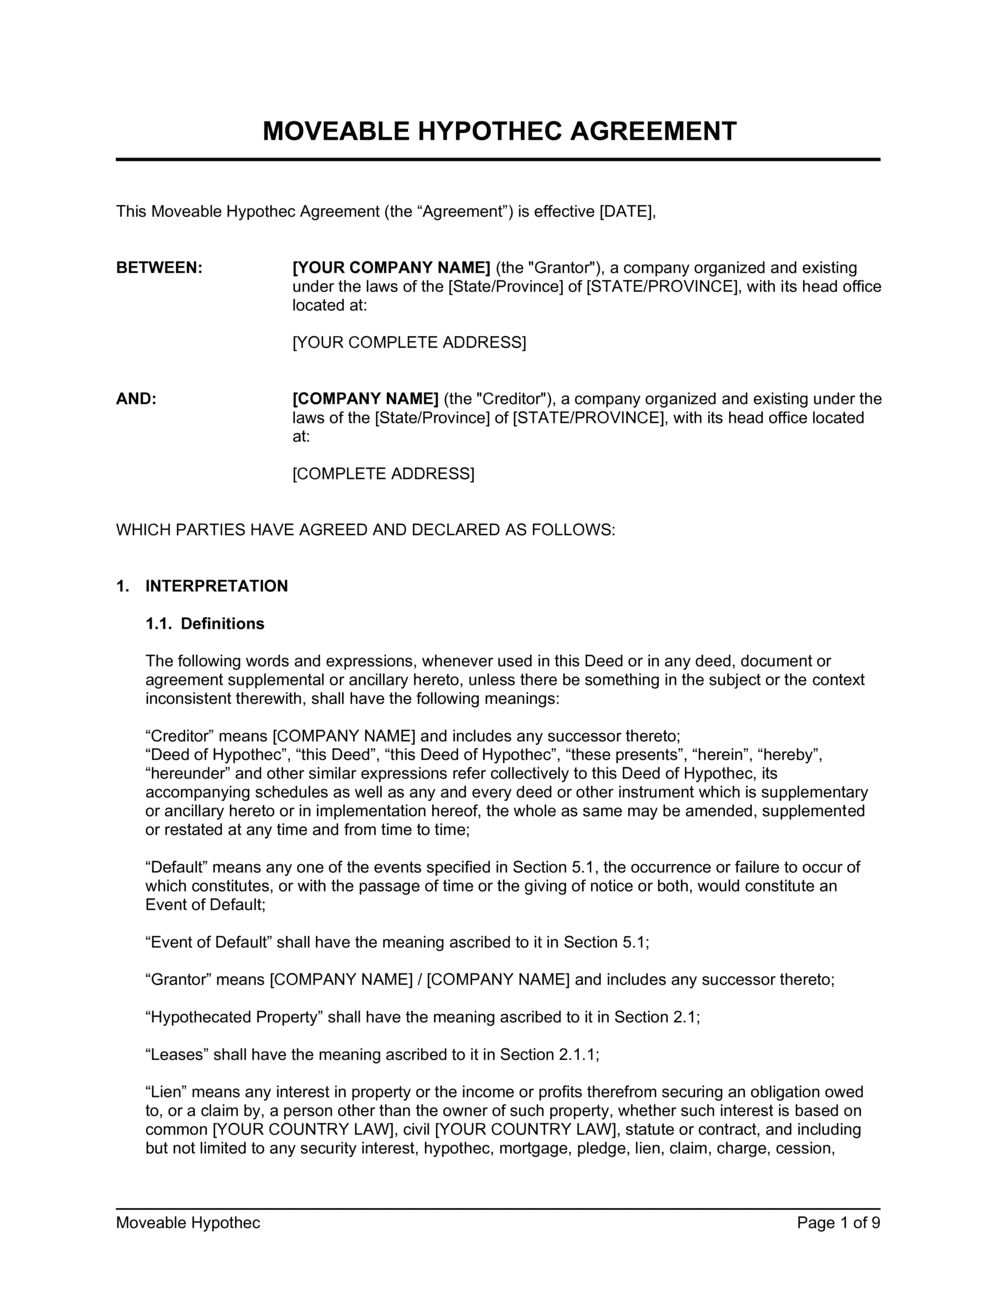 Business-in-a-Box's Moveable Hypothec Agreement Template